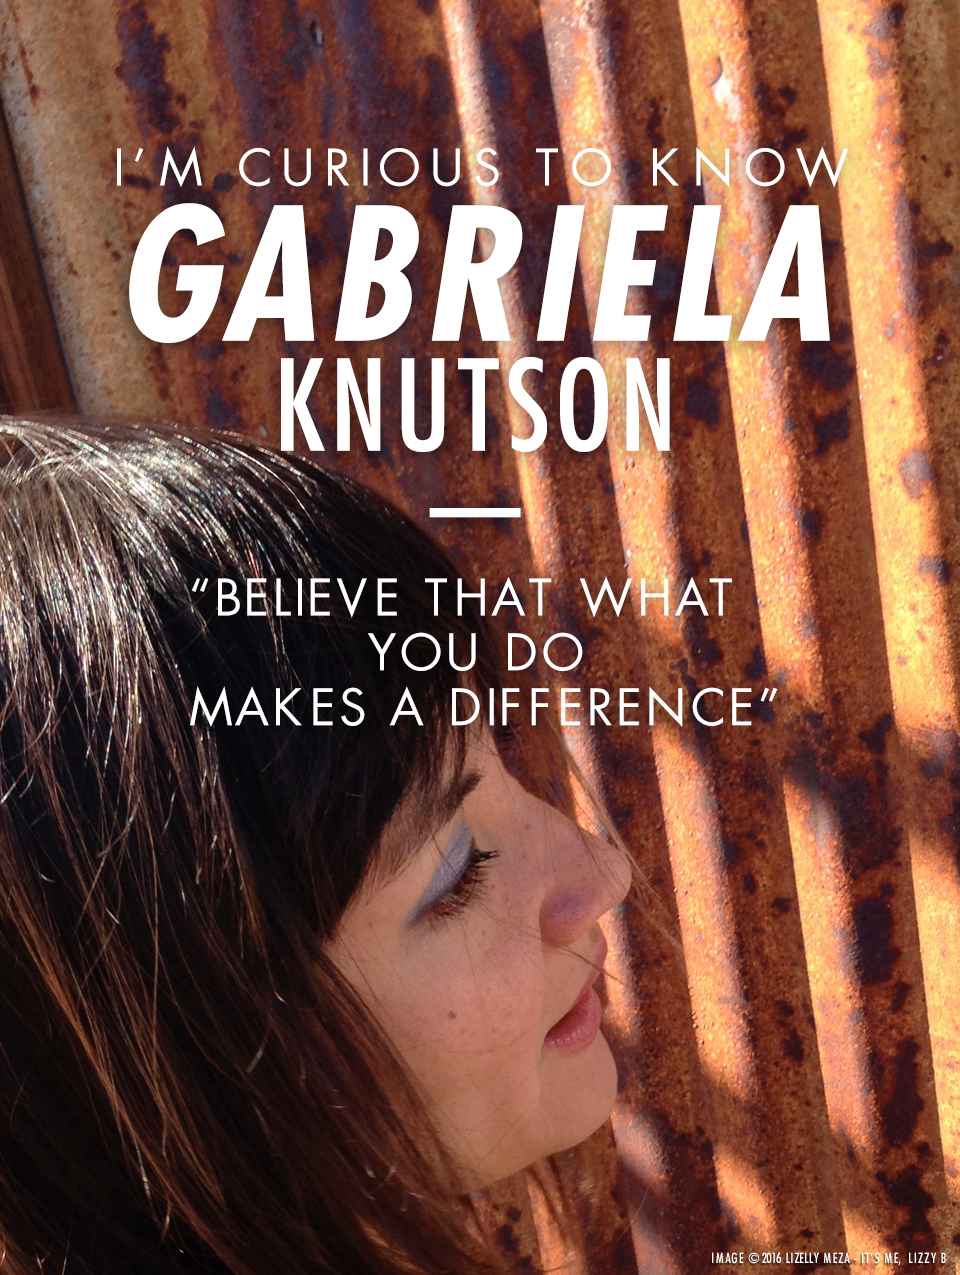 I'm Curious to Know—Gabriela Knutson // It's Me, Lizzy B - Musings on Life, Business, & The Pursuit of Curiosity // Personal blog of Lizelly Meza from Lizzy B Loves